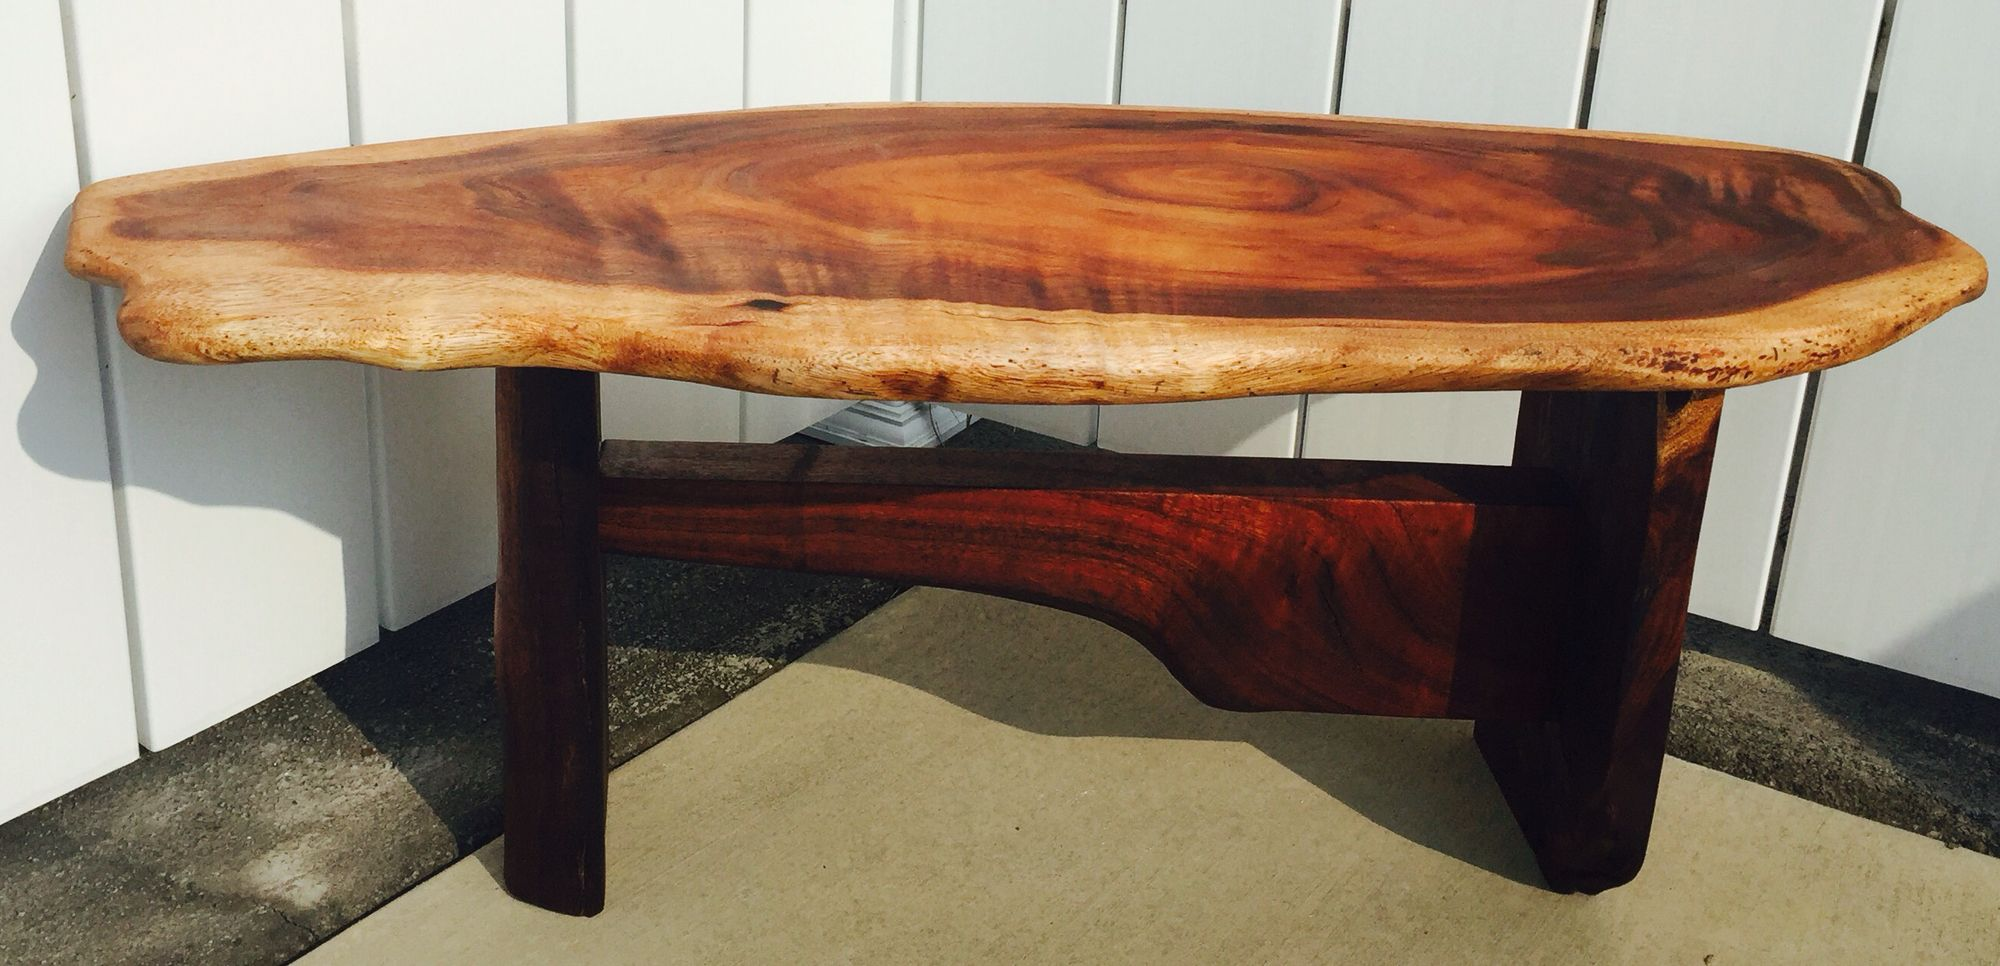 all solid hawaiian koa wood coffee table check out my works at www